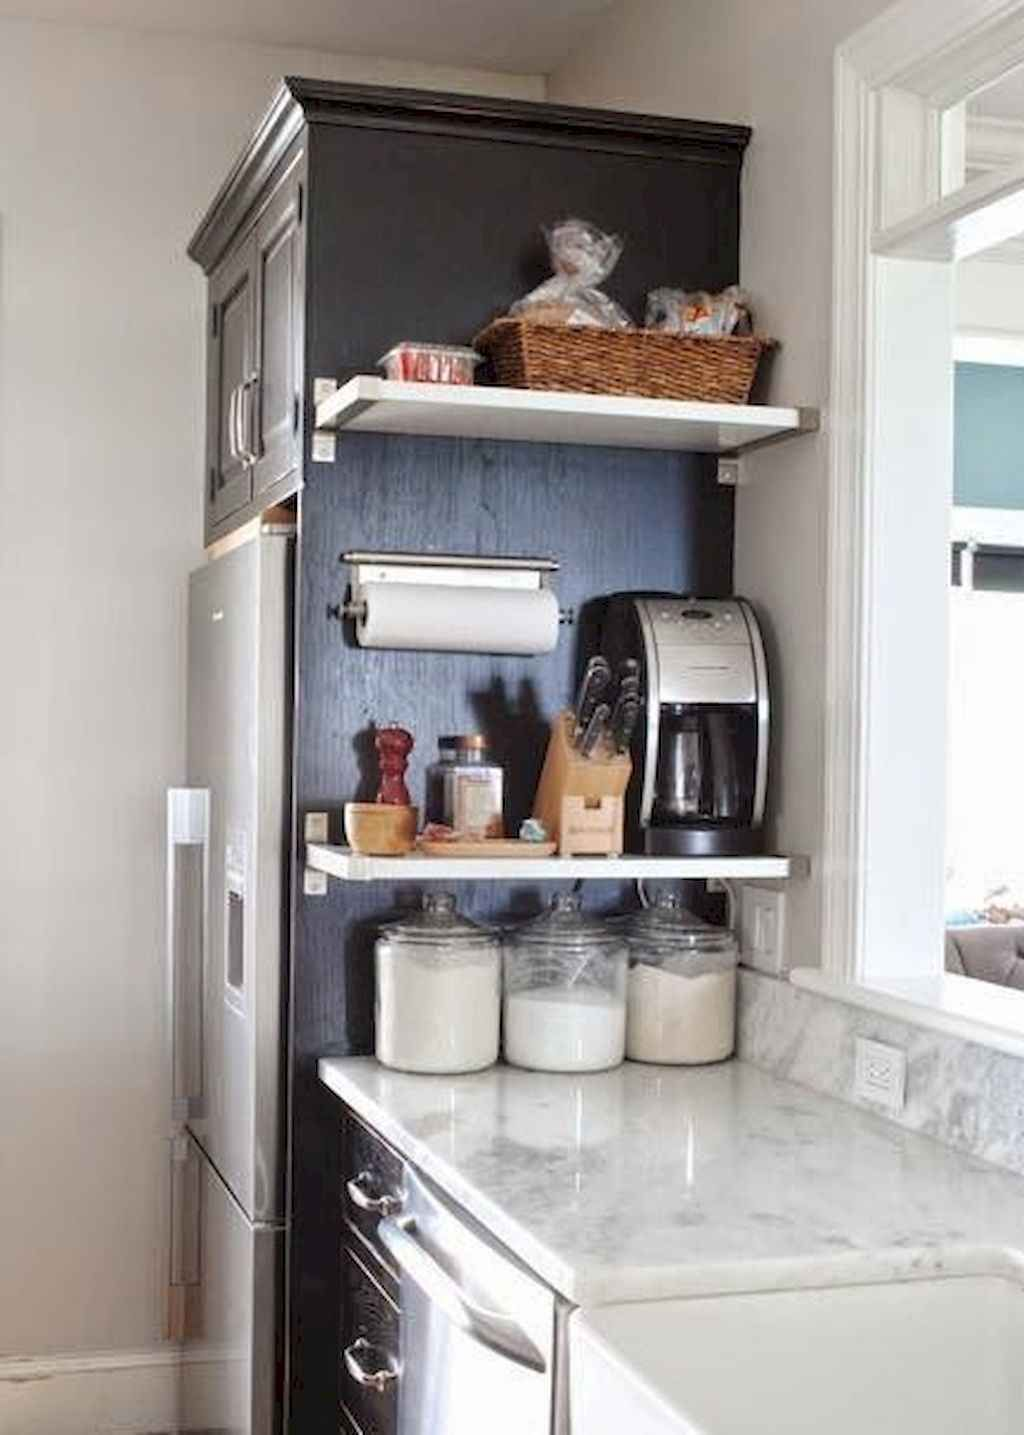 55 diy small kitchen storage and organization ideas gladecor com small kitchen storage on kitchen organization for small spaces id=68923